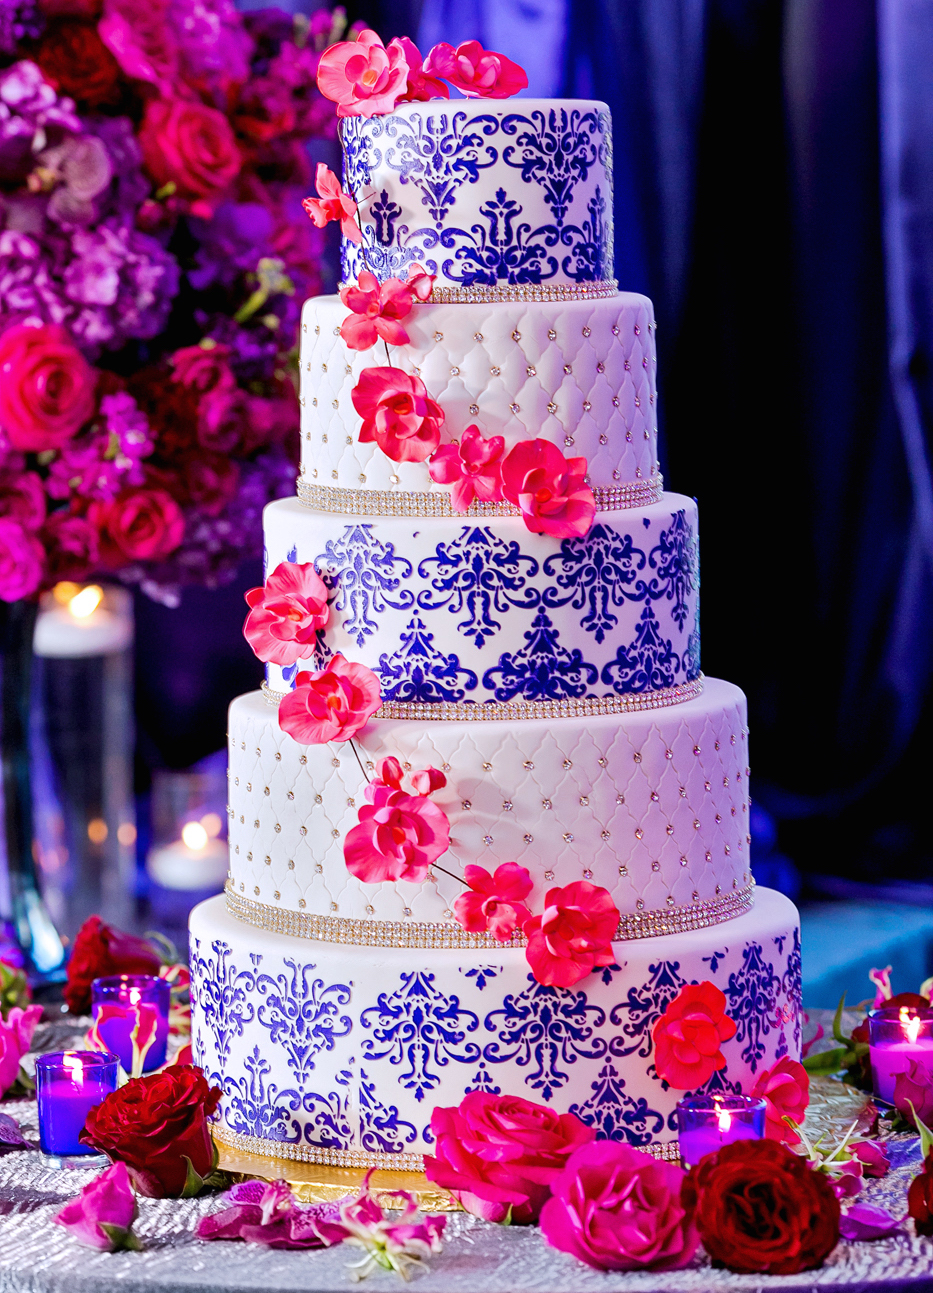 Indian wedding cake with white tufted layers and purple damask print design